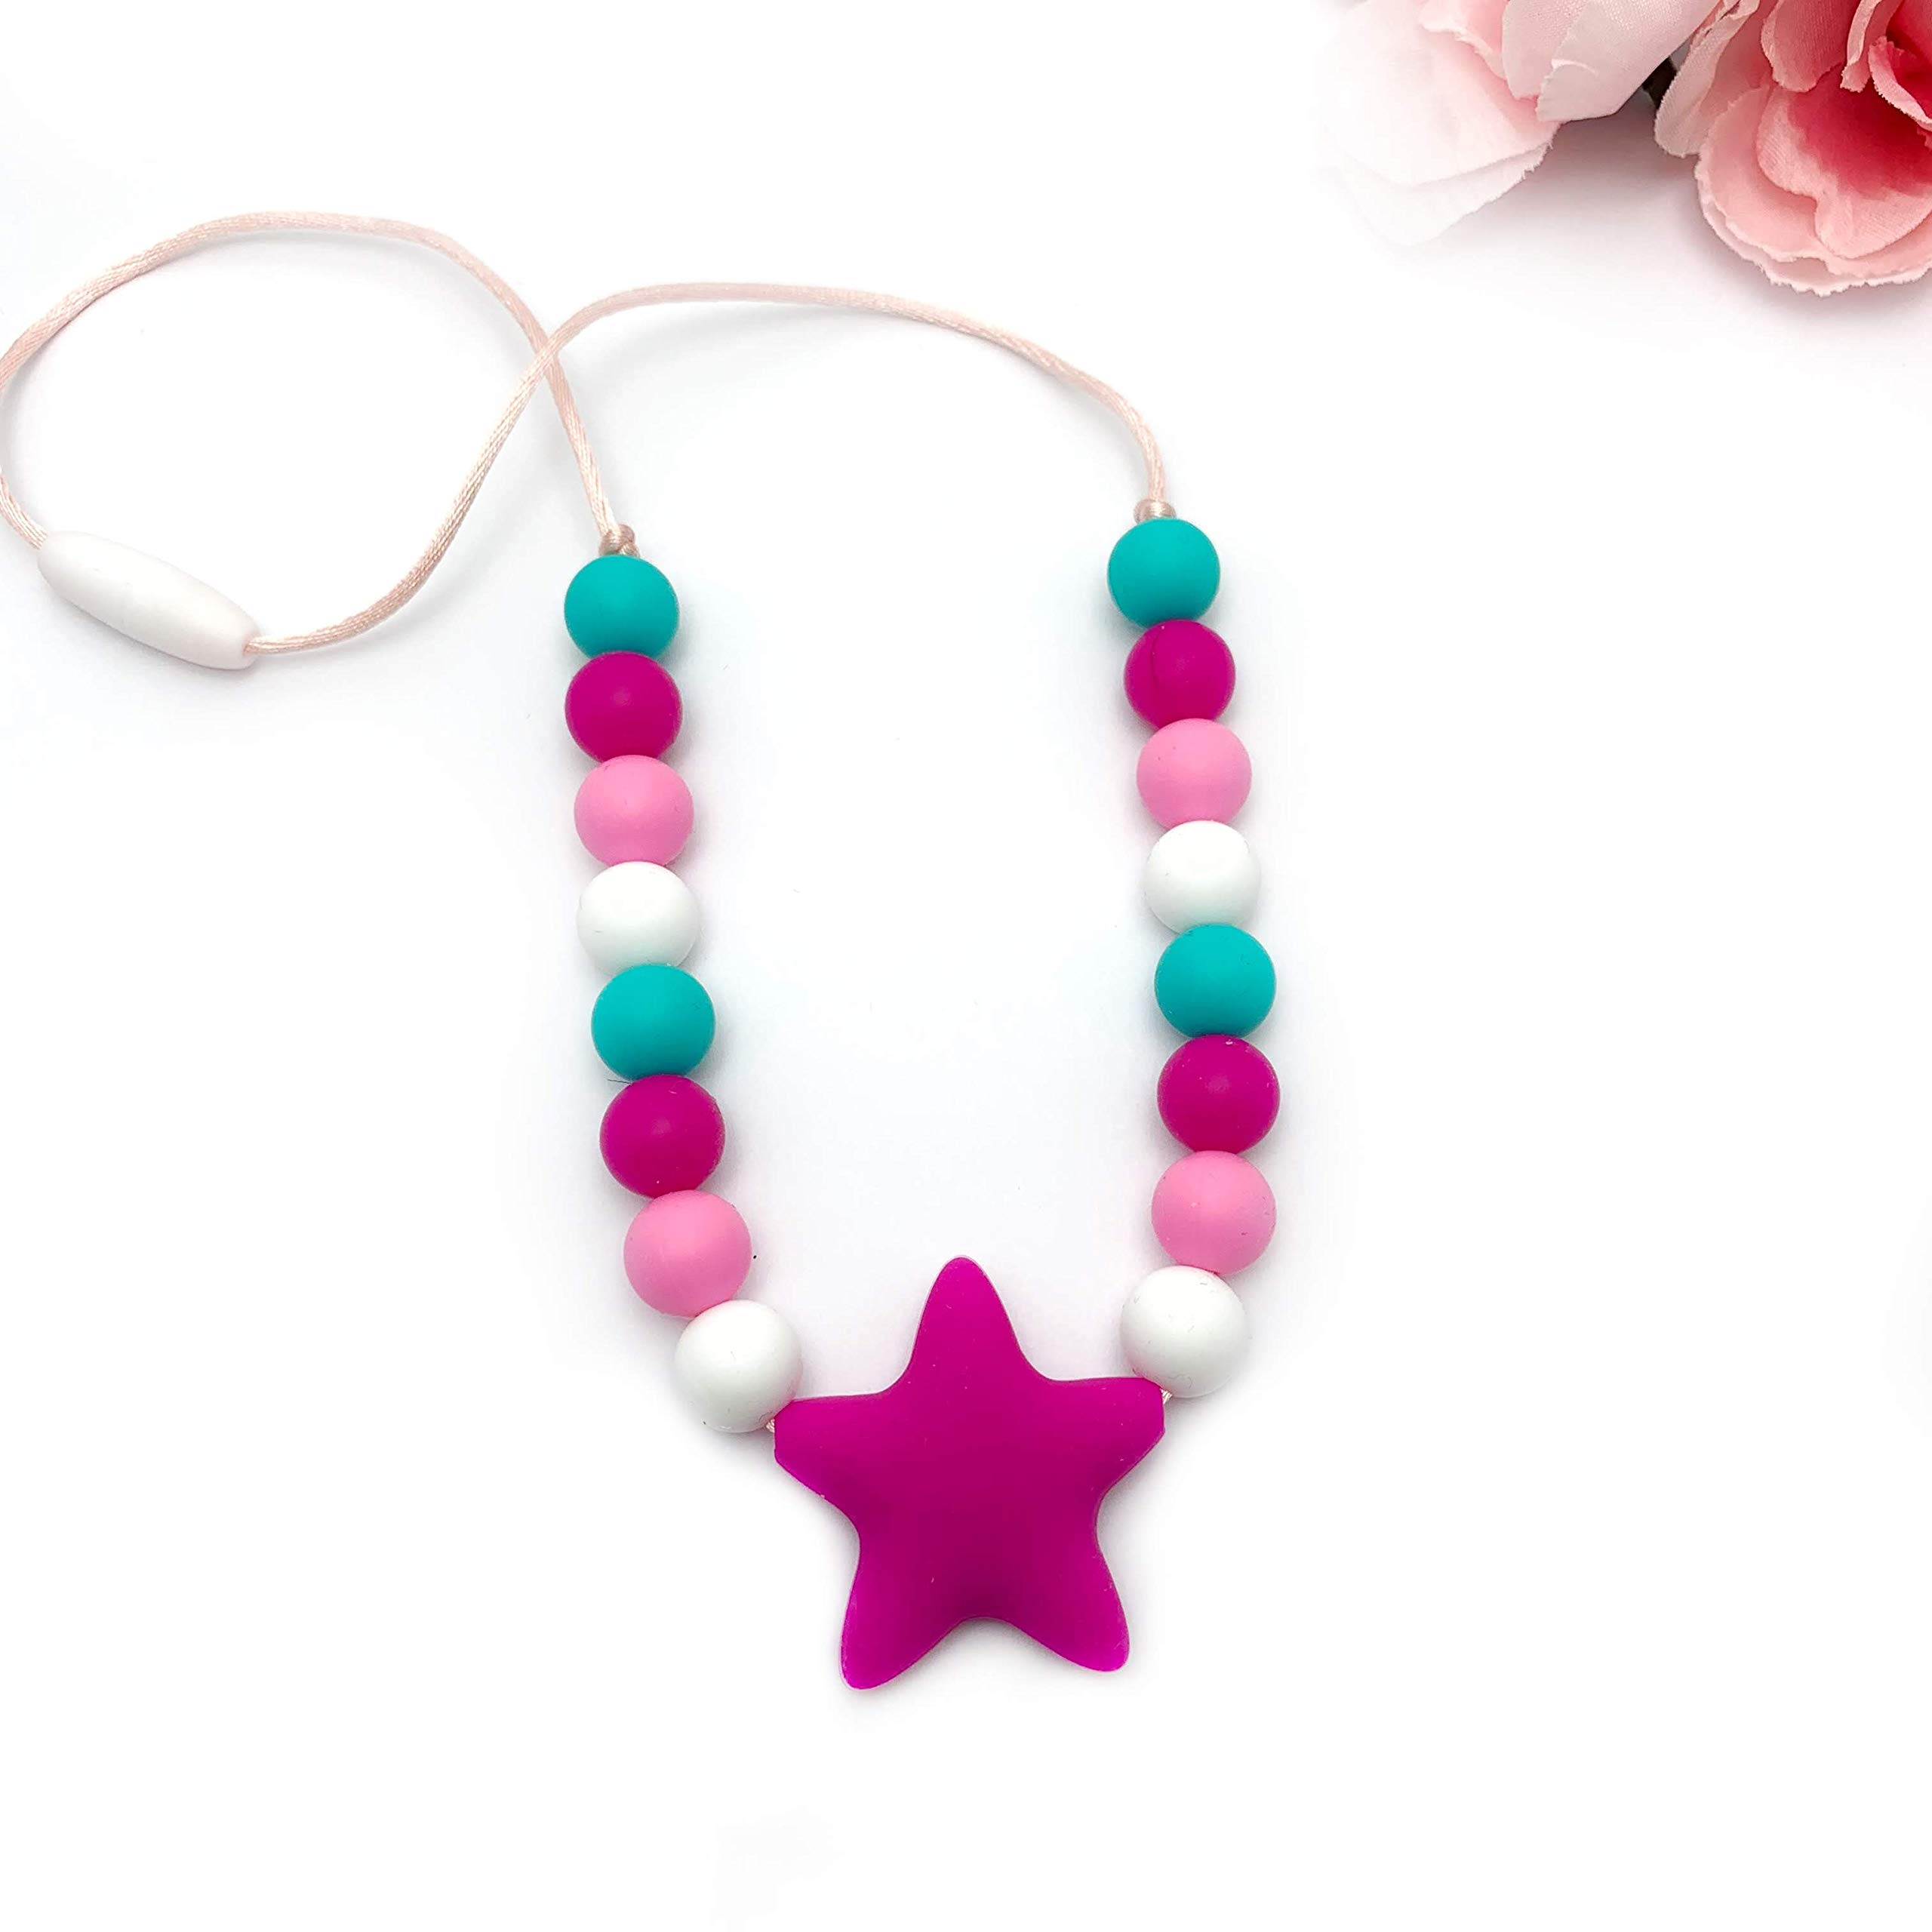 Chewy Necklace for Kids with Sensory Disorder, Autism and ADHD - Toddler Teething Necklace - Sensory Silicone Jewelry by Gummy Chic